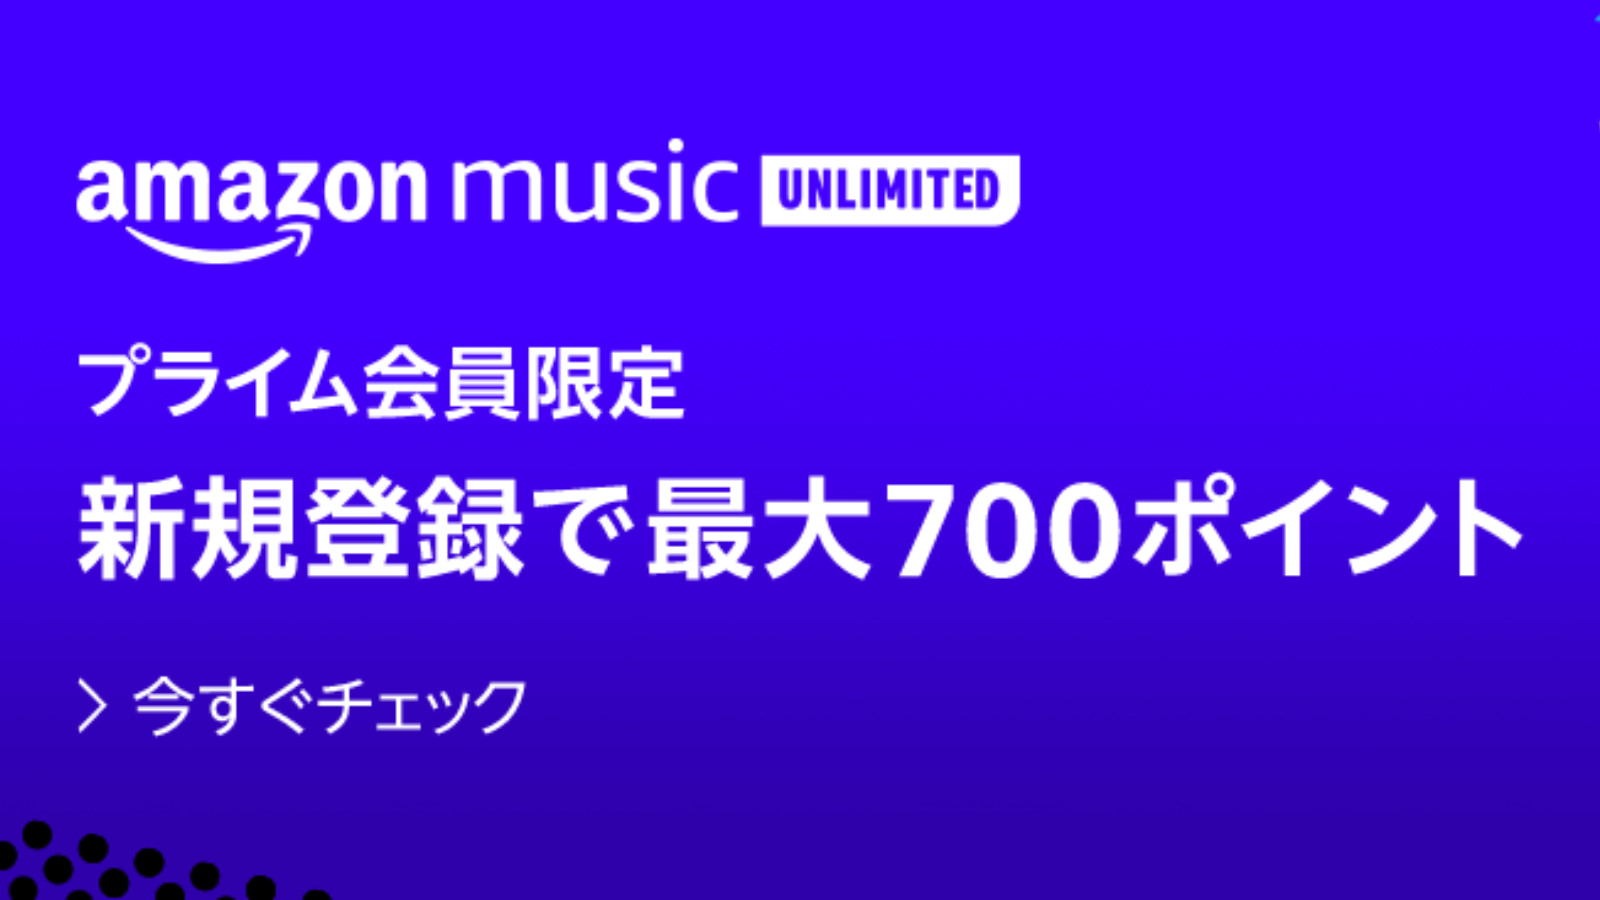 Amazon Music Unlimited Pointback campaign